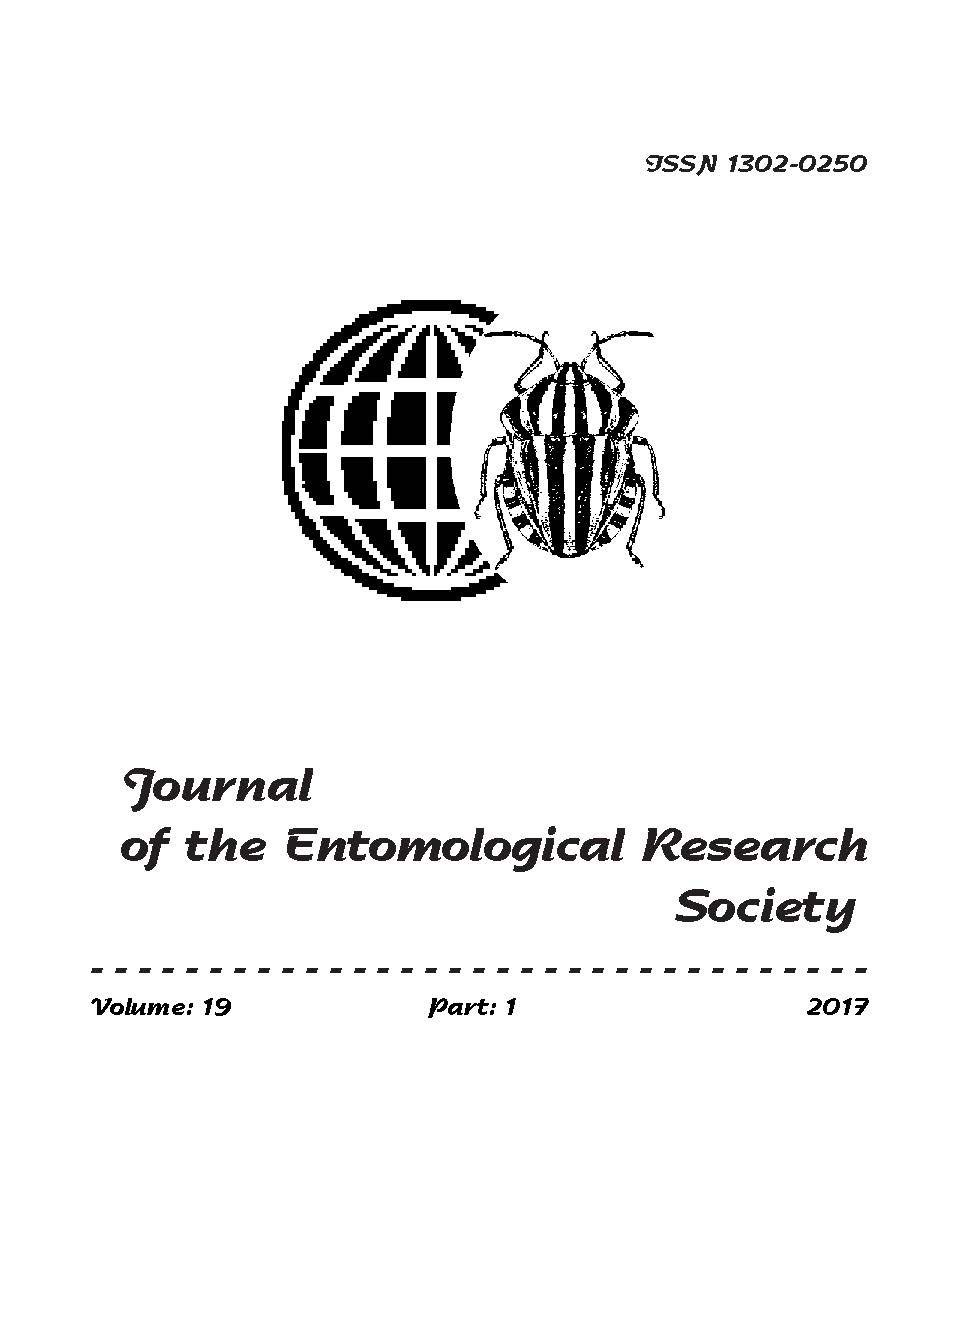 View Vol. 19 No. 1 (2017): Journal of the Entomological Research Society